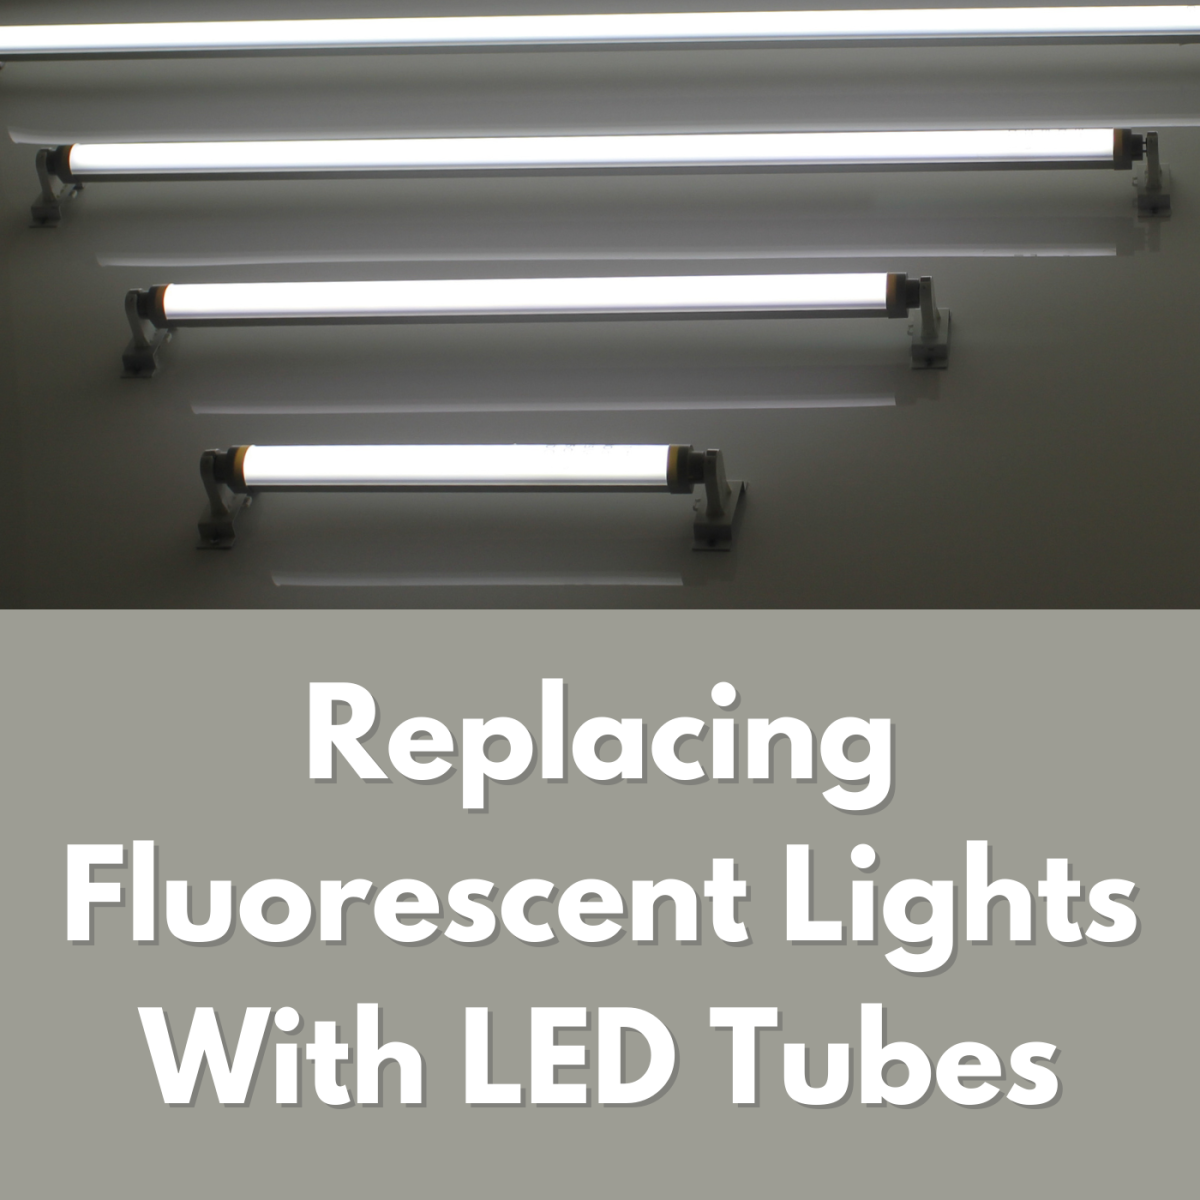 Swapping out your fluorescent tubes for LED tube lights will save electricity and money. Read about how I made the switch.